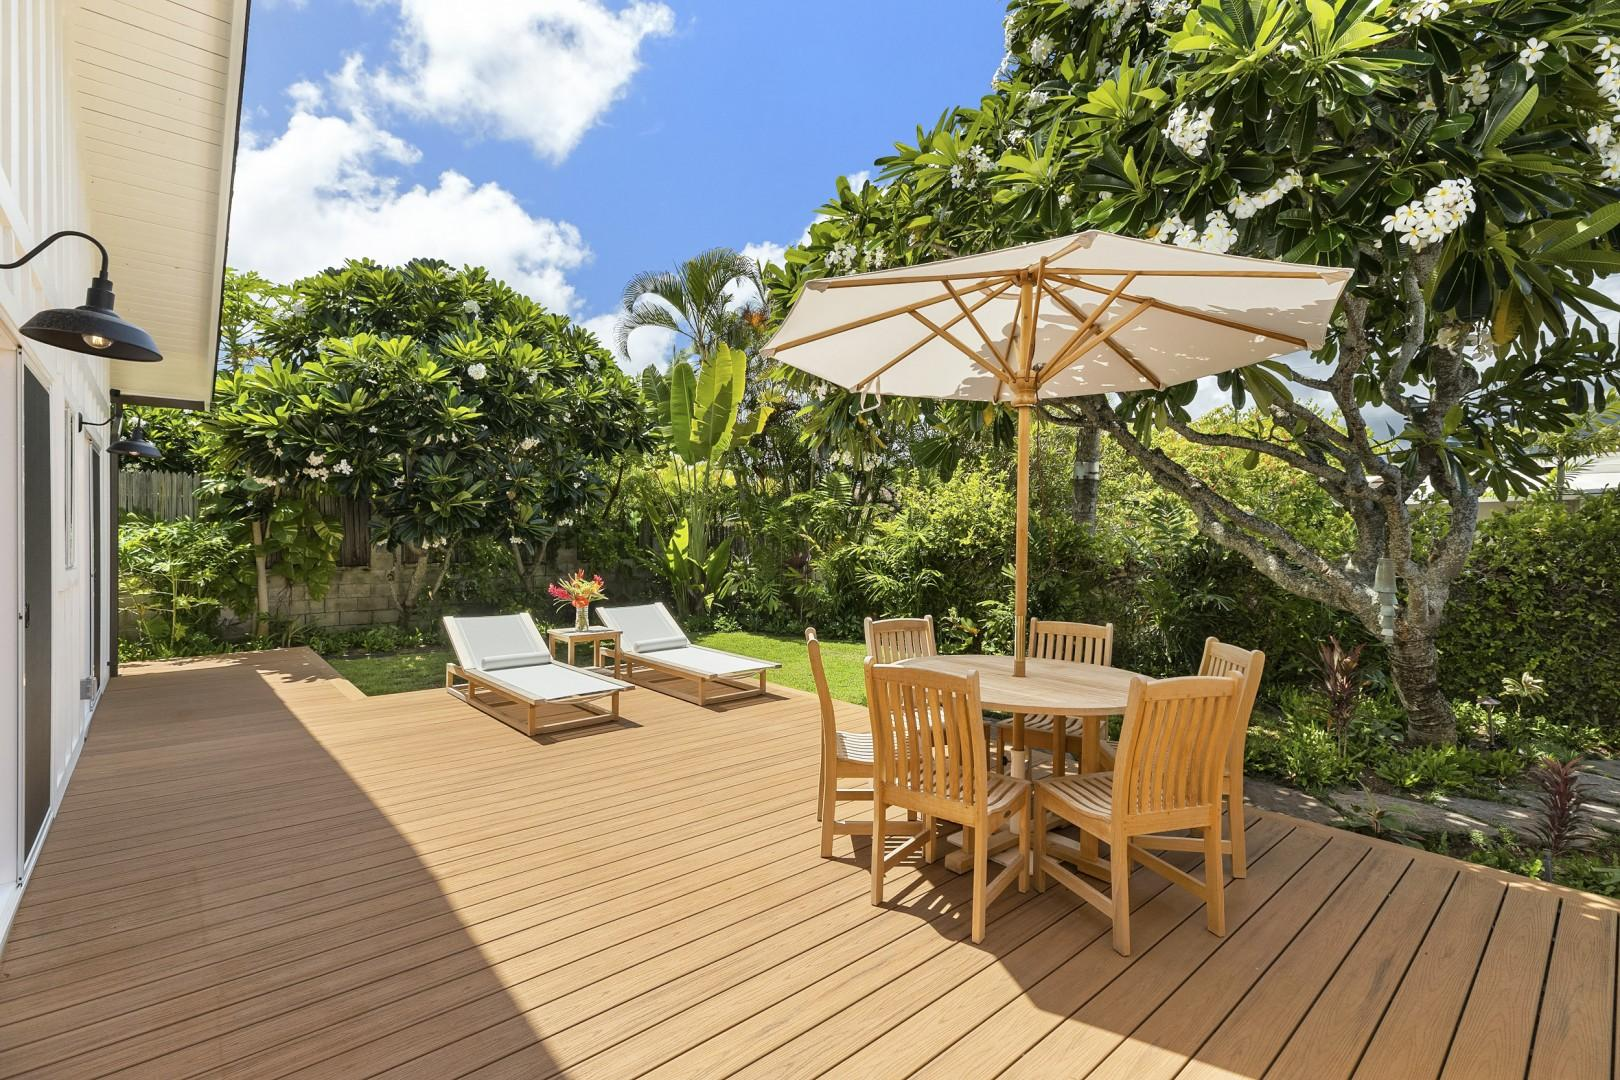 Private, Calm, and peaceful main lanai and garden area. Large deck with Chaise loungers for soaking up the sun and outdoor seating area.